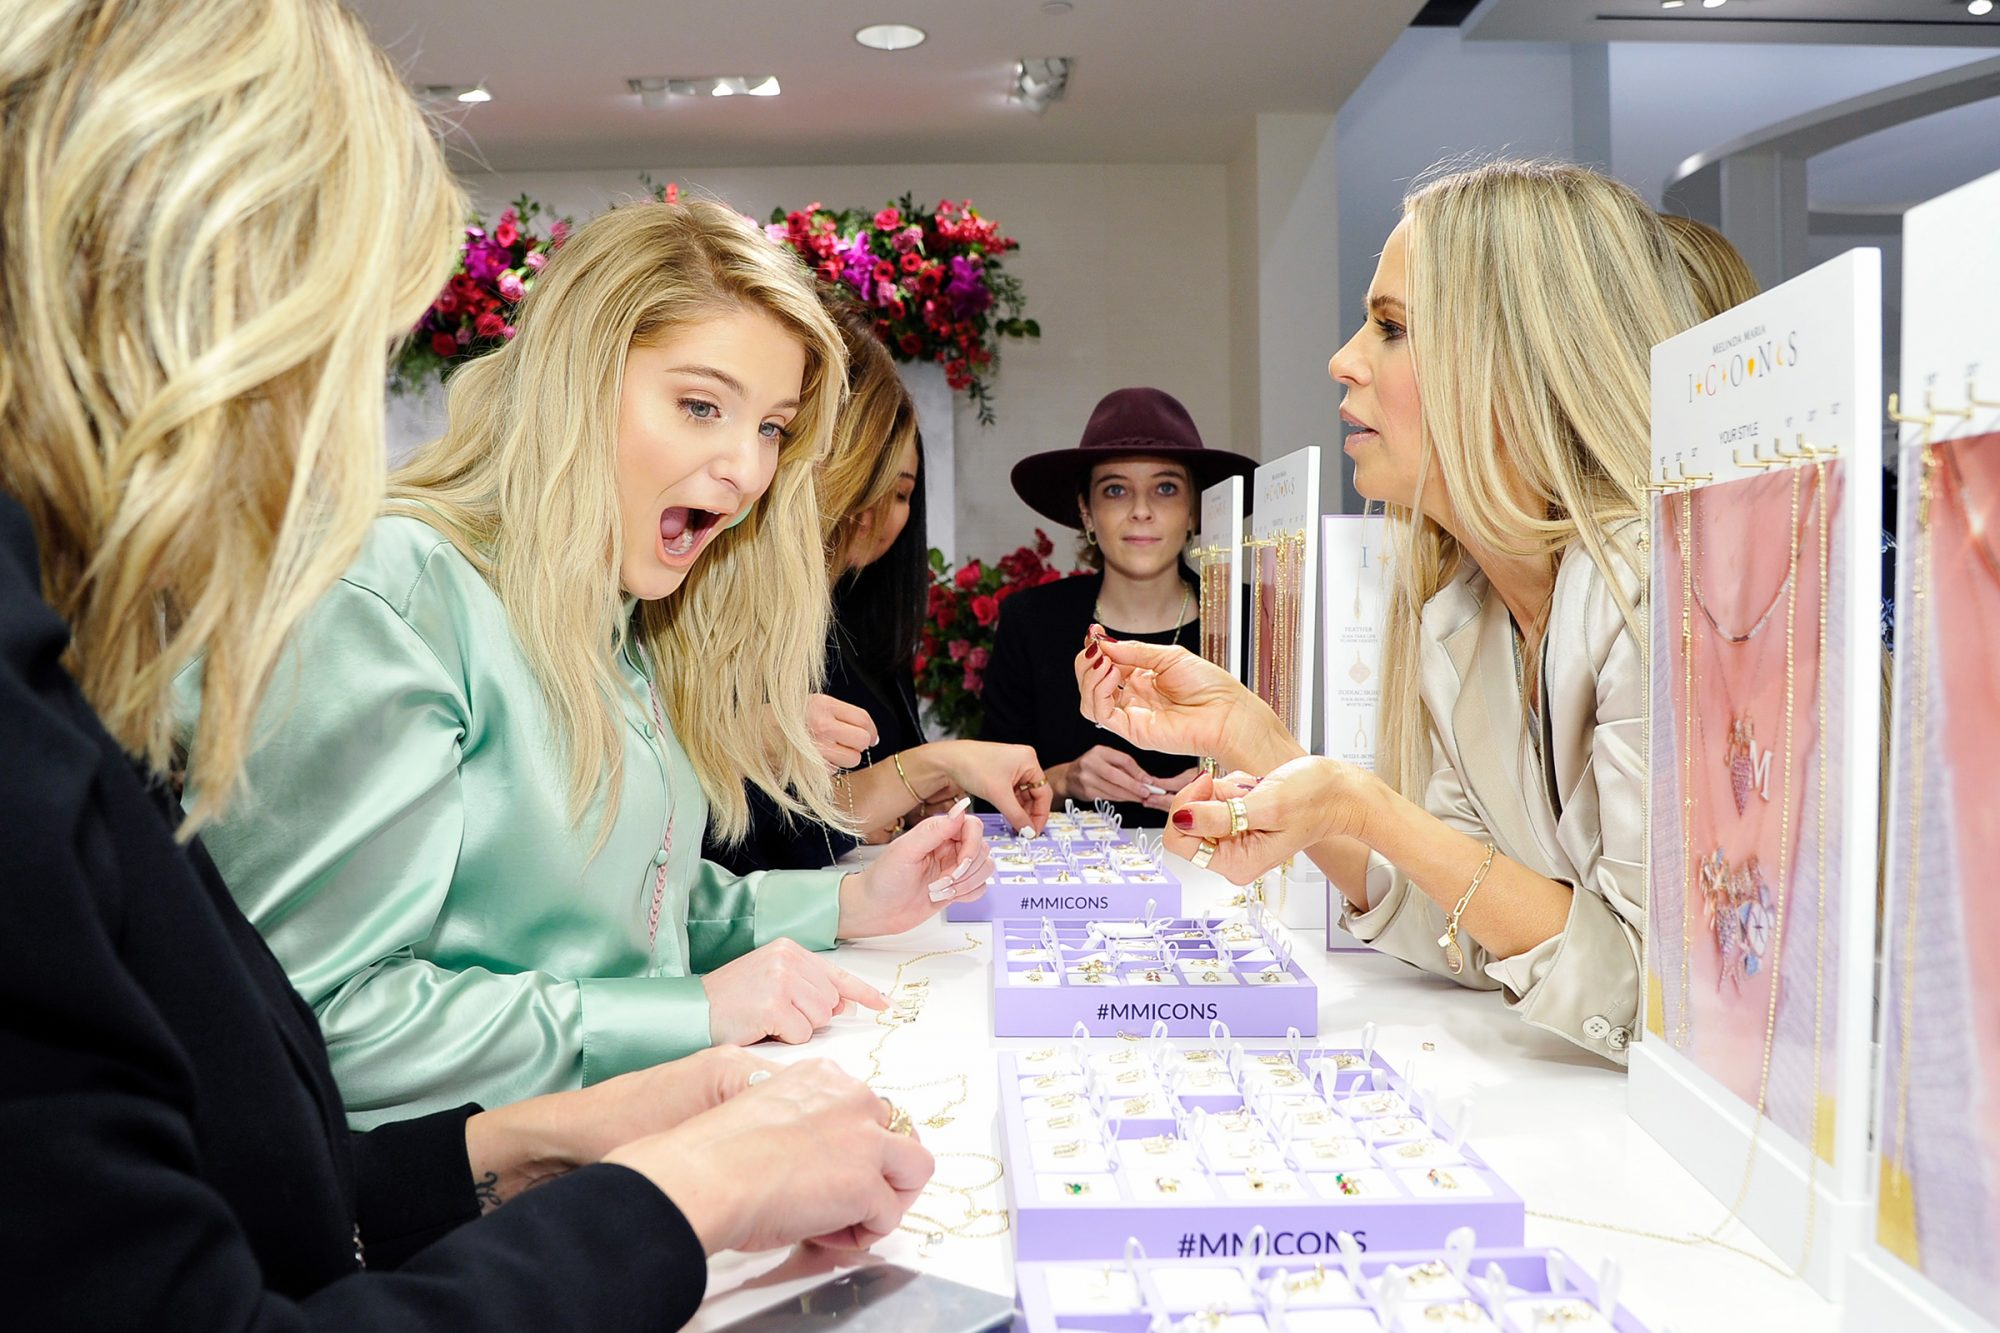 Meghan Trainor and Melinda Spigel attend the Launch of New ICONS Collection hosted by Nordstrom Century City and Melinda Maria Jewelry at Nordstrom Century City on December 05, 2019 in Los Angeles, California